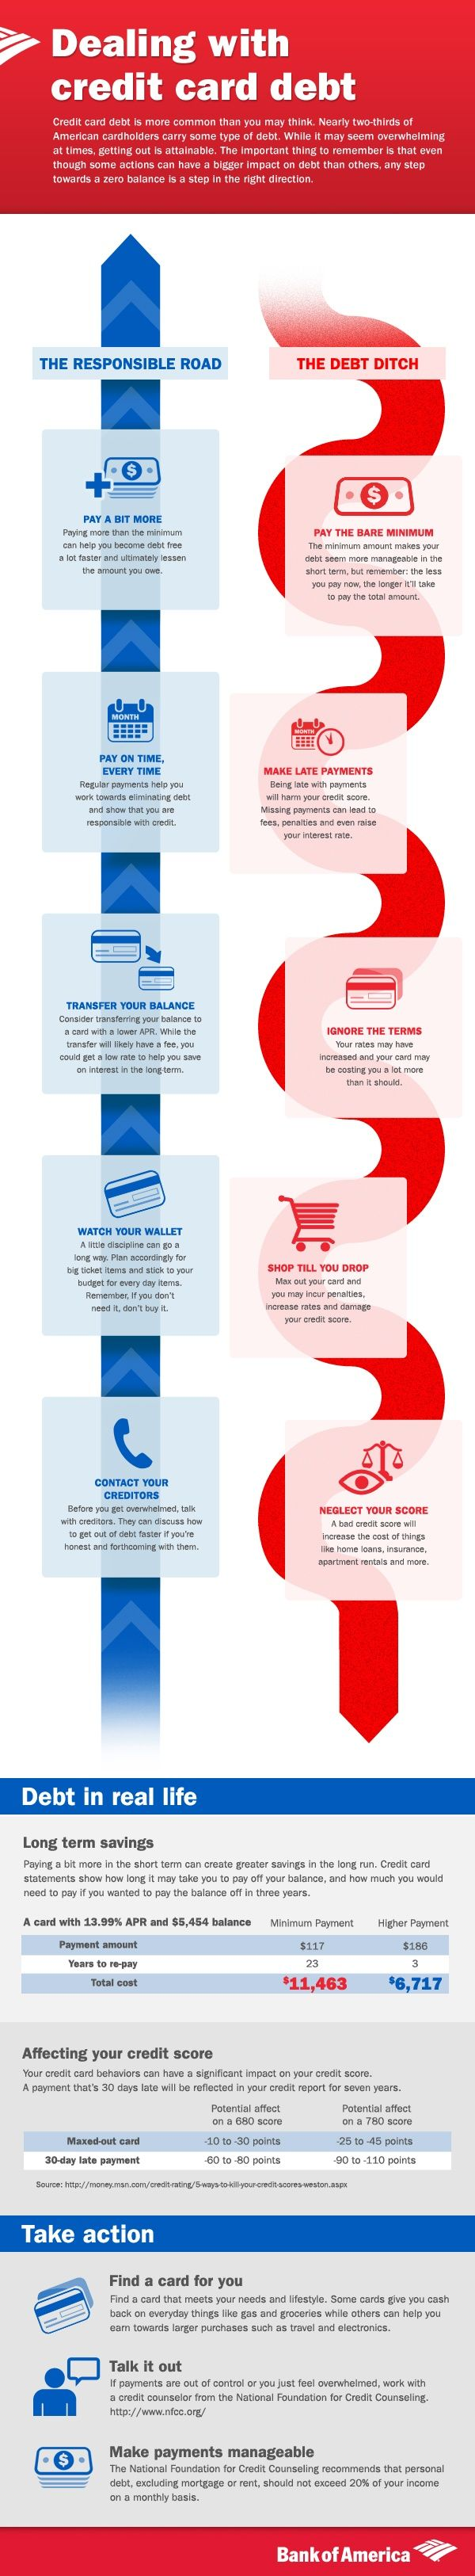 Dealing with Credit Card Debt - Promotional Infographic from Bank of America. Includes some great basic information for managing & preventing debt woes . Contact your personal finance manager or your BHS Care Coordinator for additional information on dealing with debt. Debt, Debt Payoff #Debt